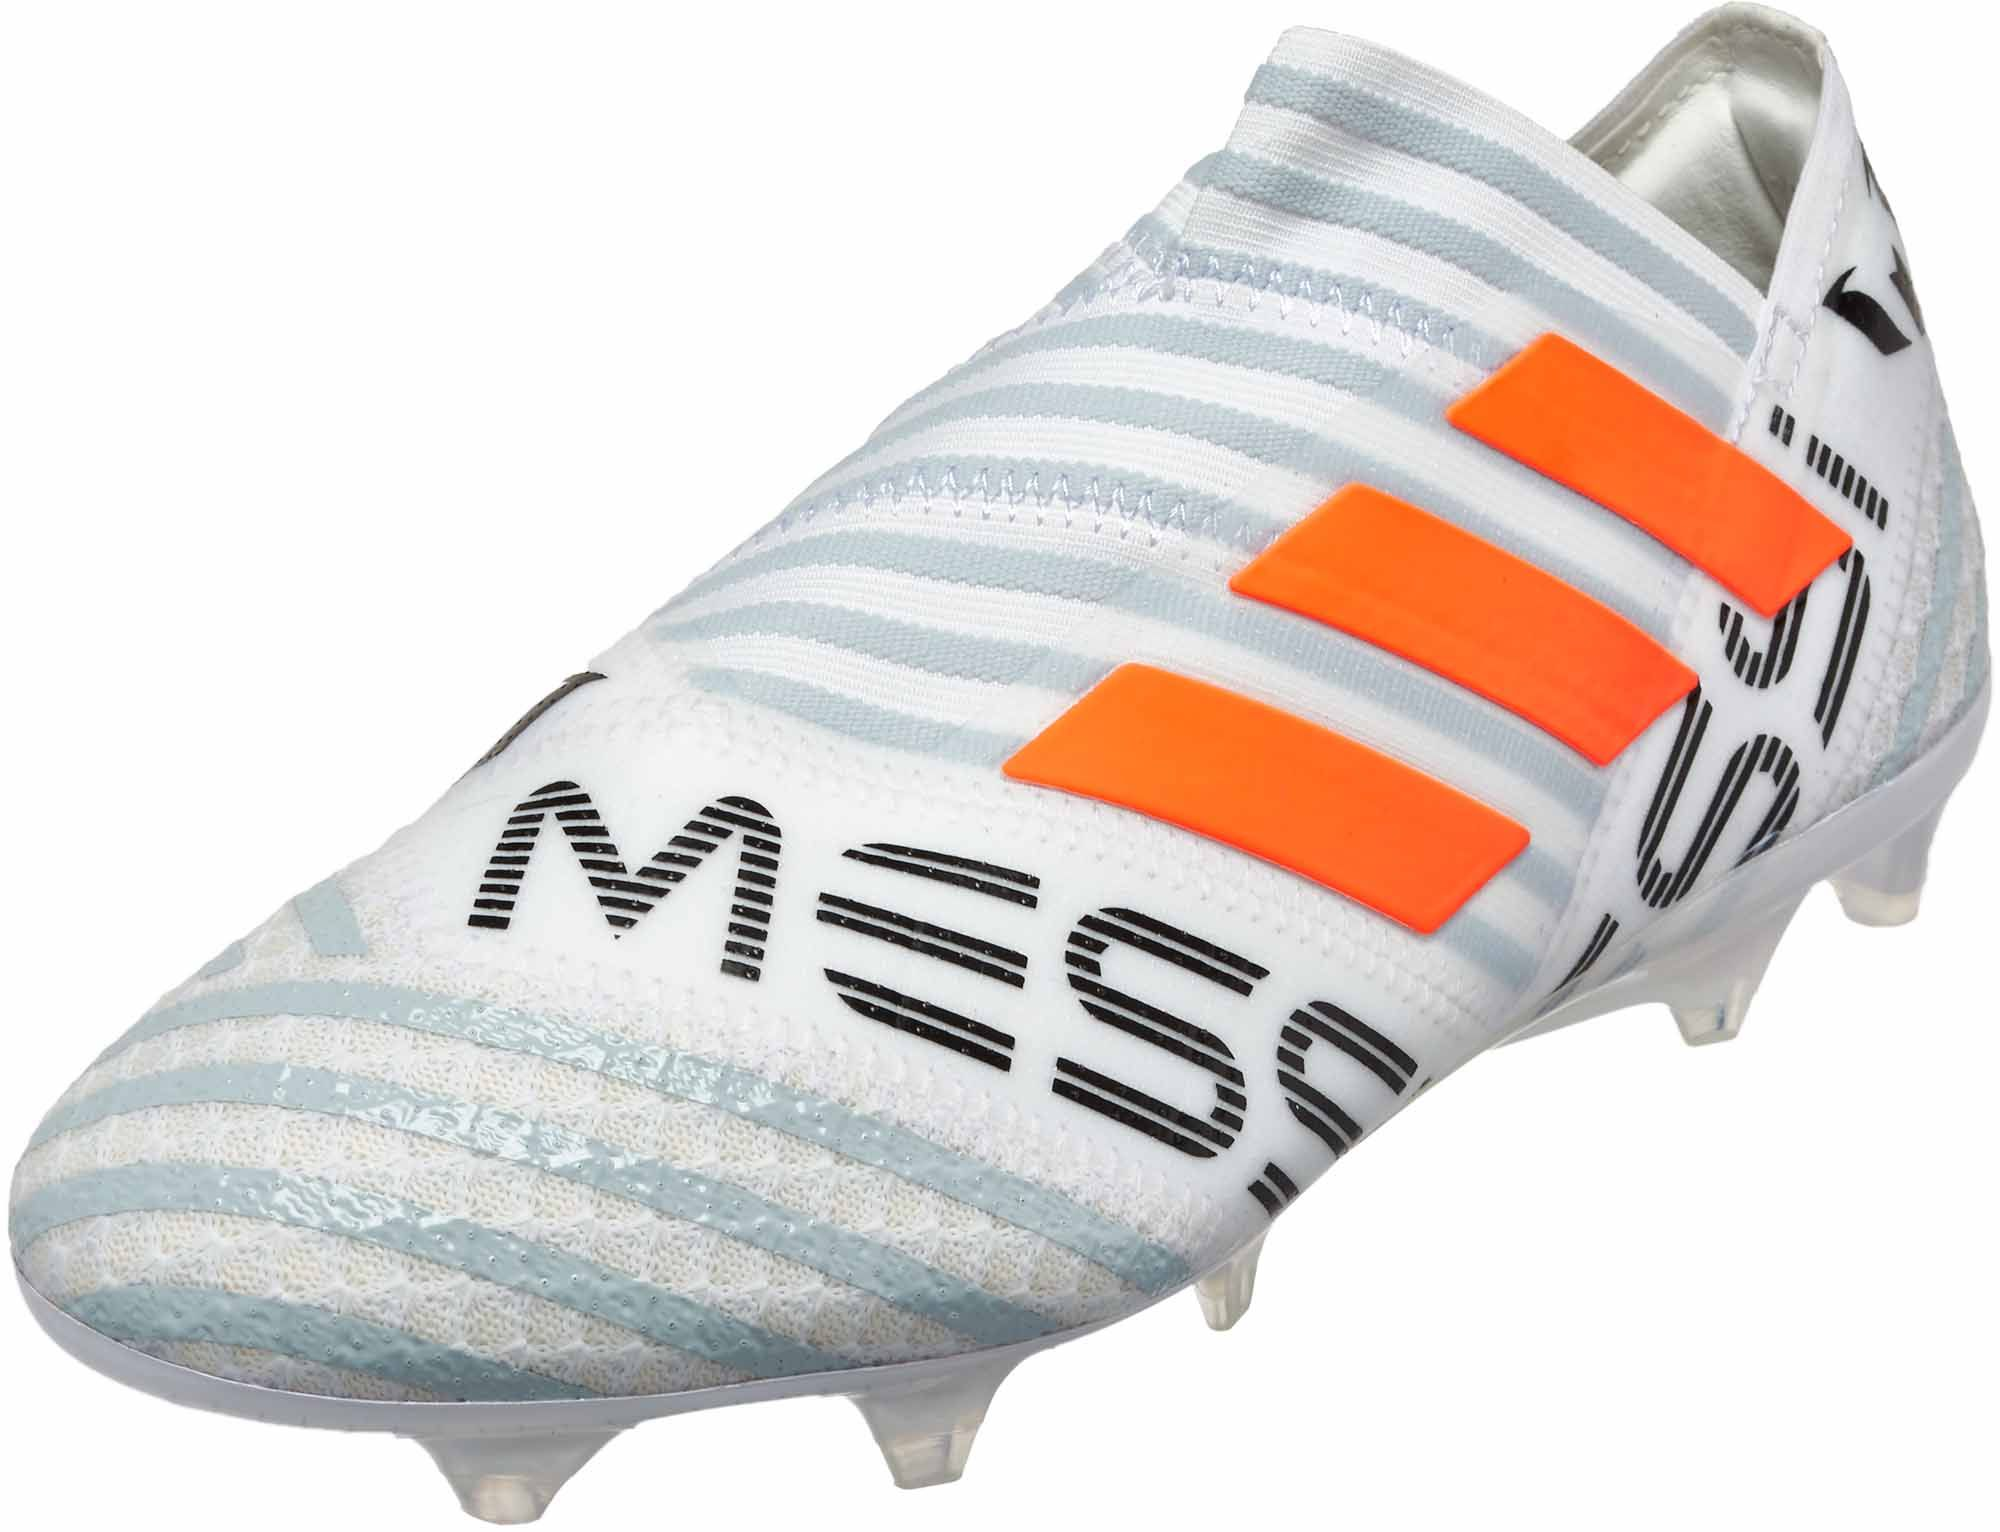 Adidas Nemeziz Messi 17 360agility Fg Nemeziz Cleats Messi Messi Soccer Shoes Barcelona Football